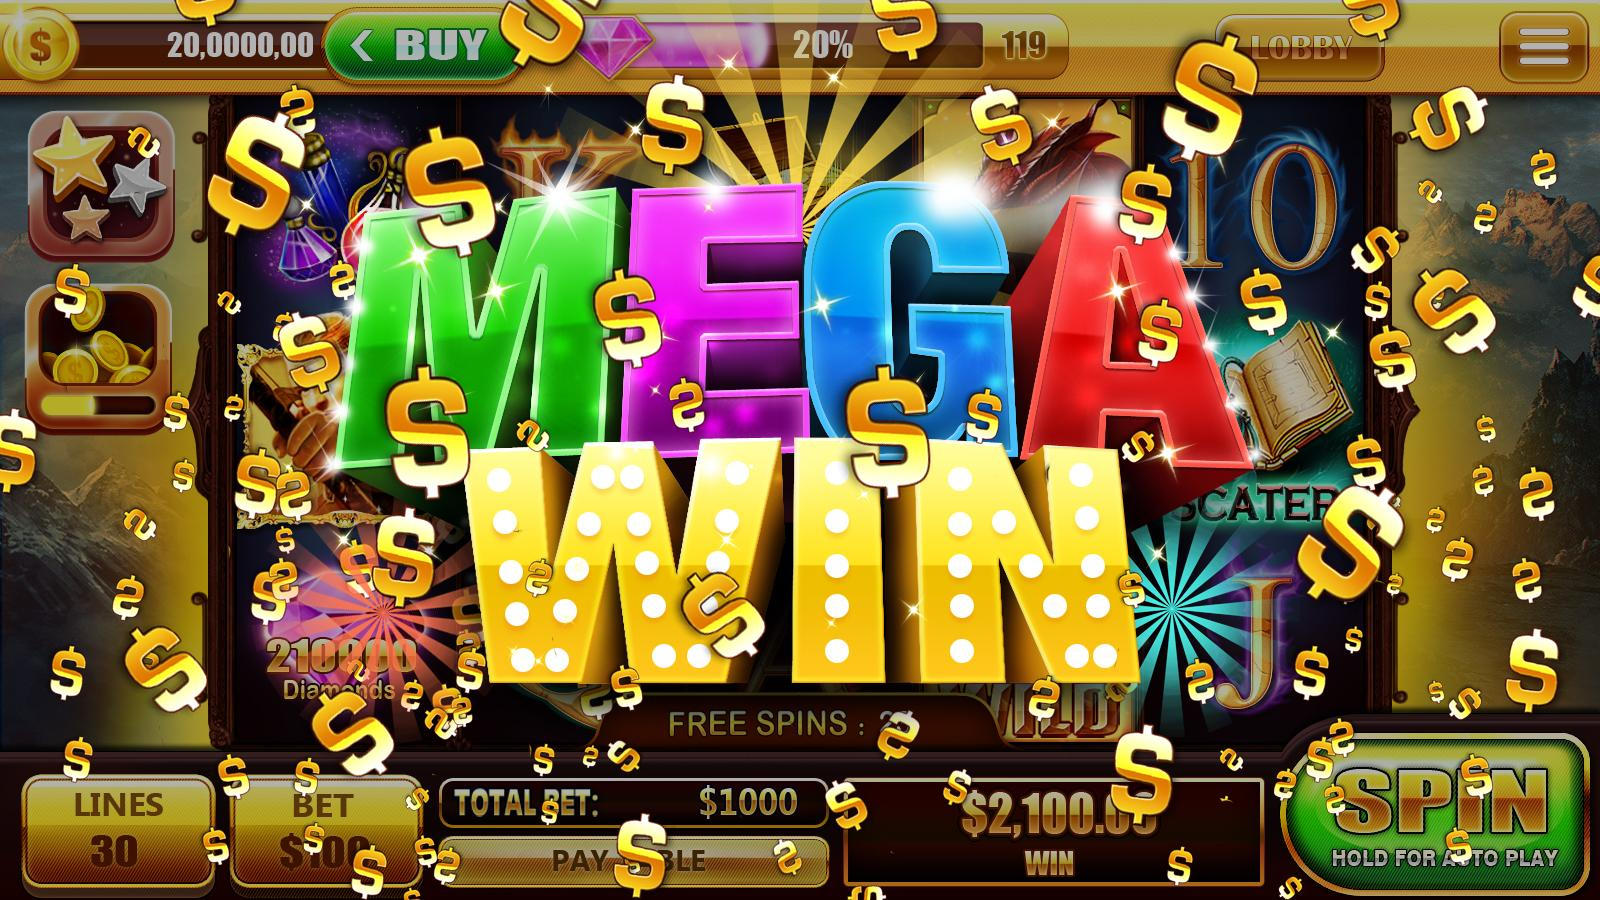 It turns out that this is a good and correct way to play online slots to win